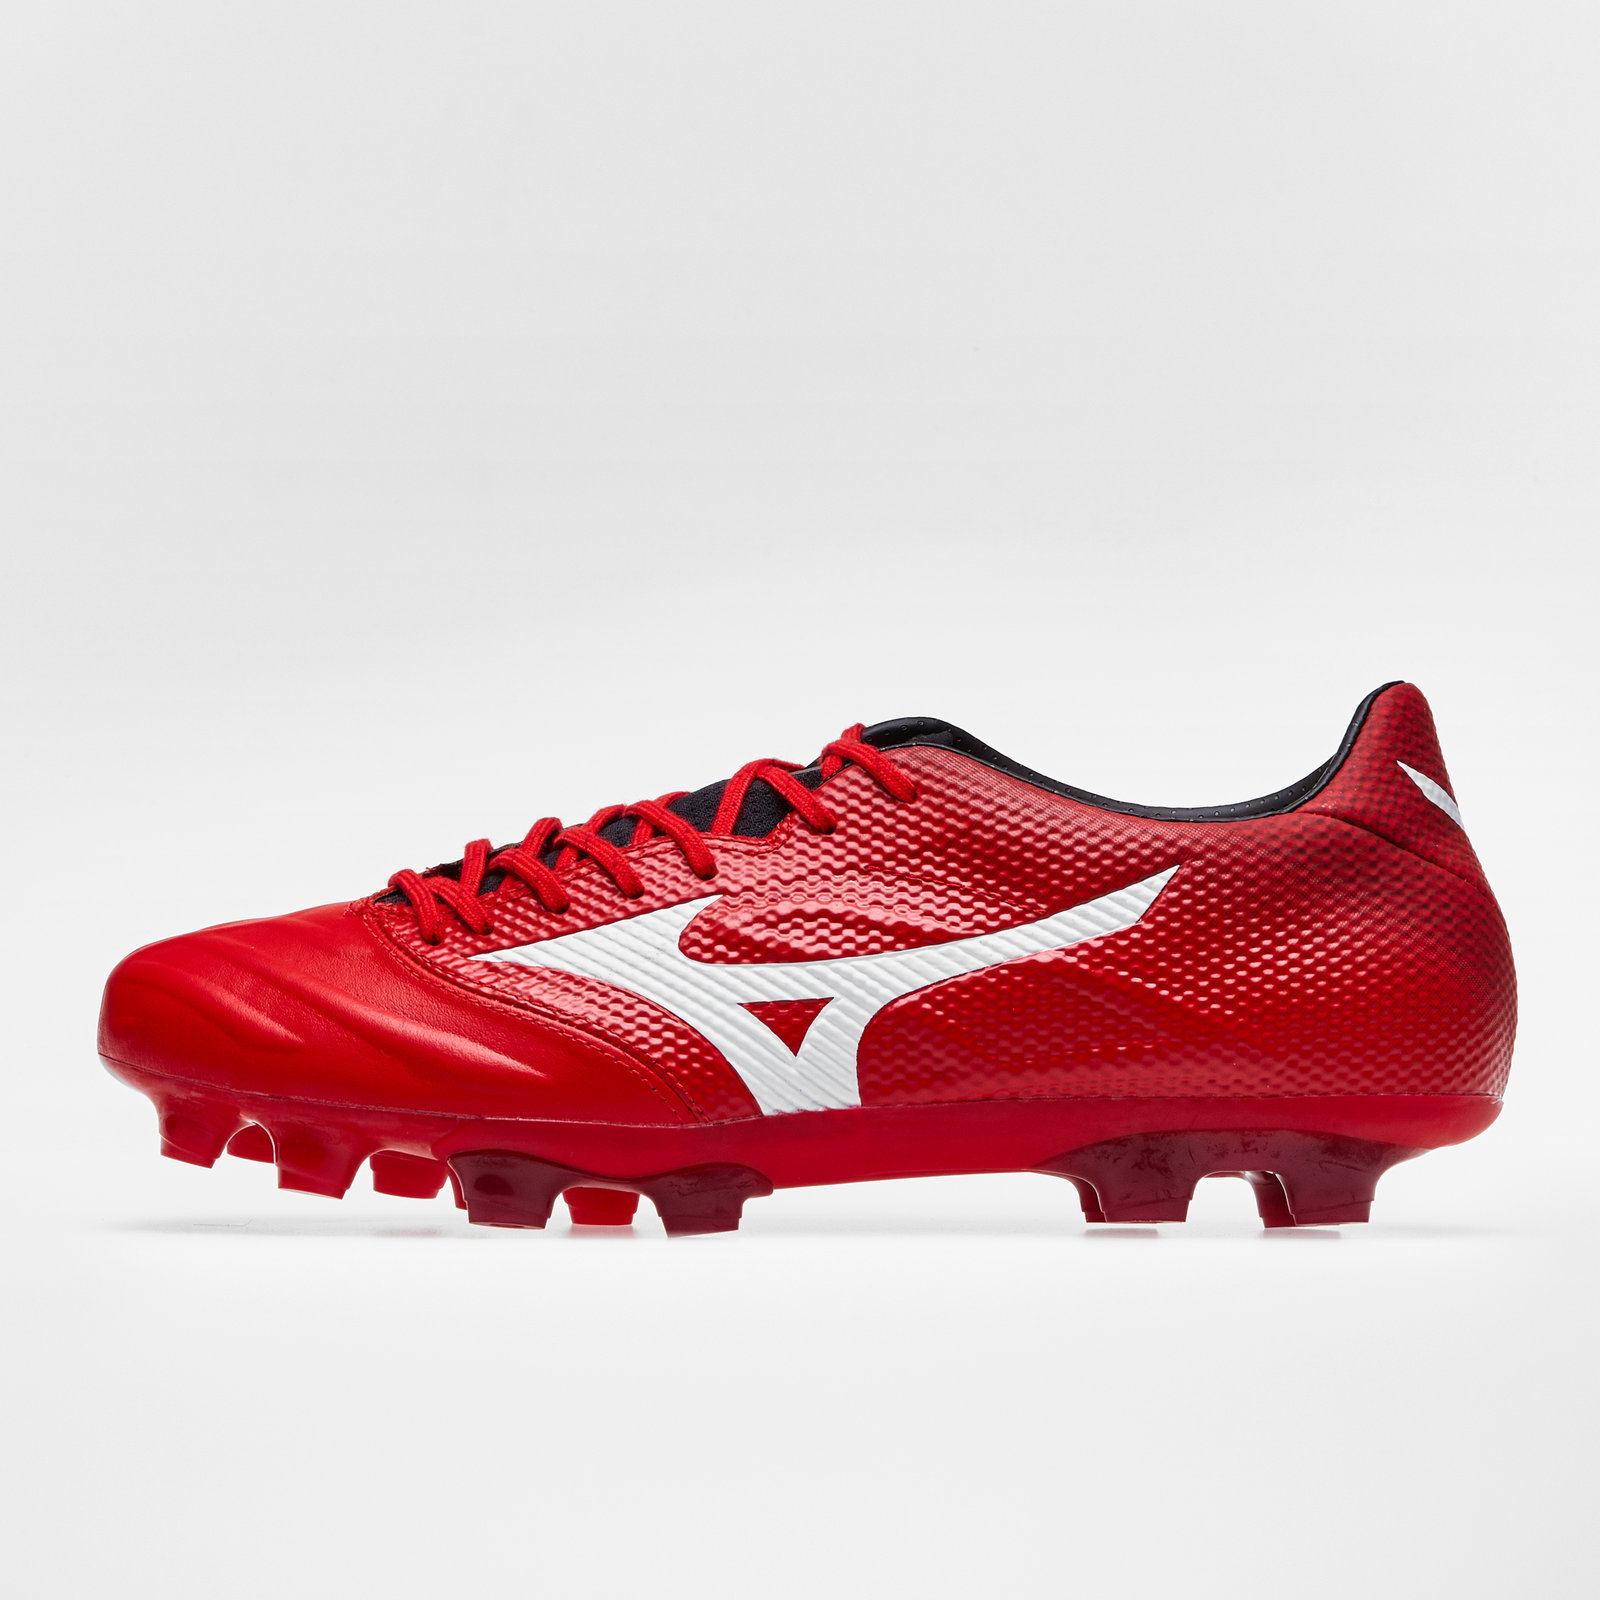 13fd3f1b2b4 Details about Mizuno Mens Rebula 2 V-Speed Firm Ground Football Boots Studs  Trainers Shoes Red